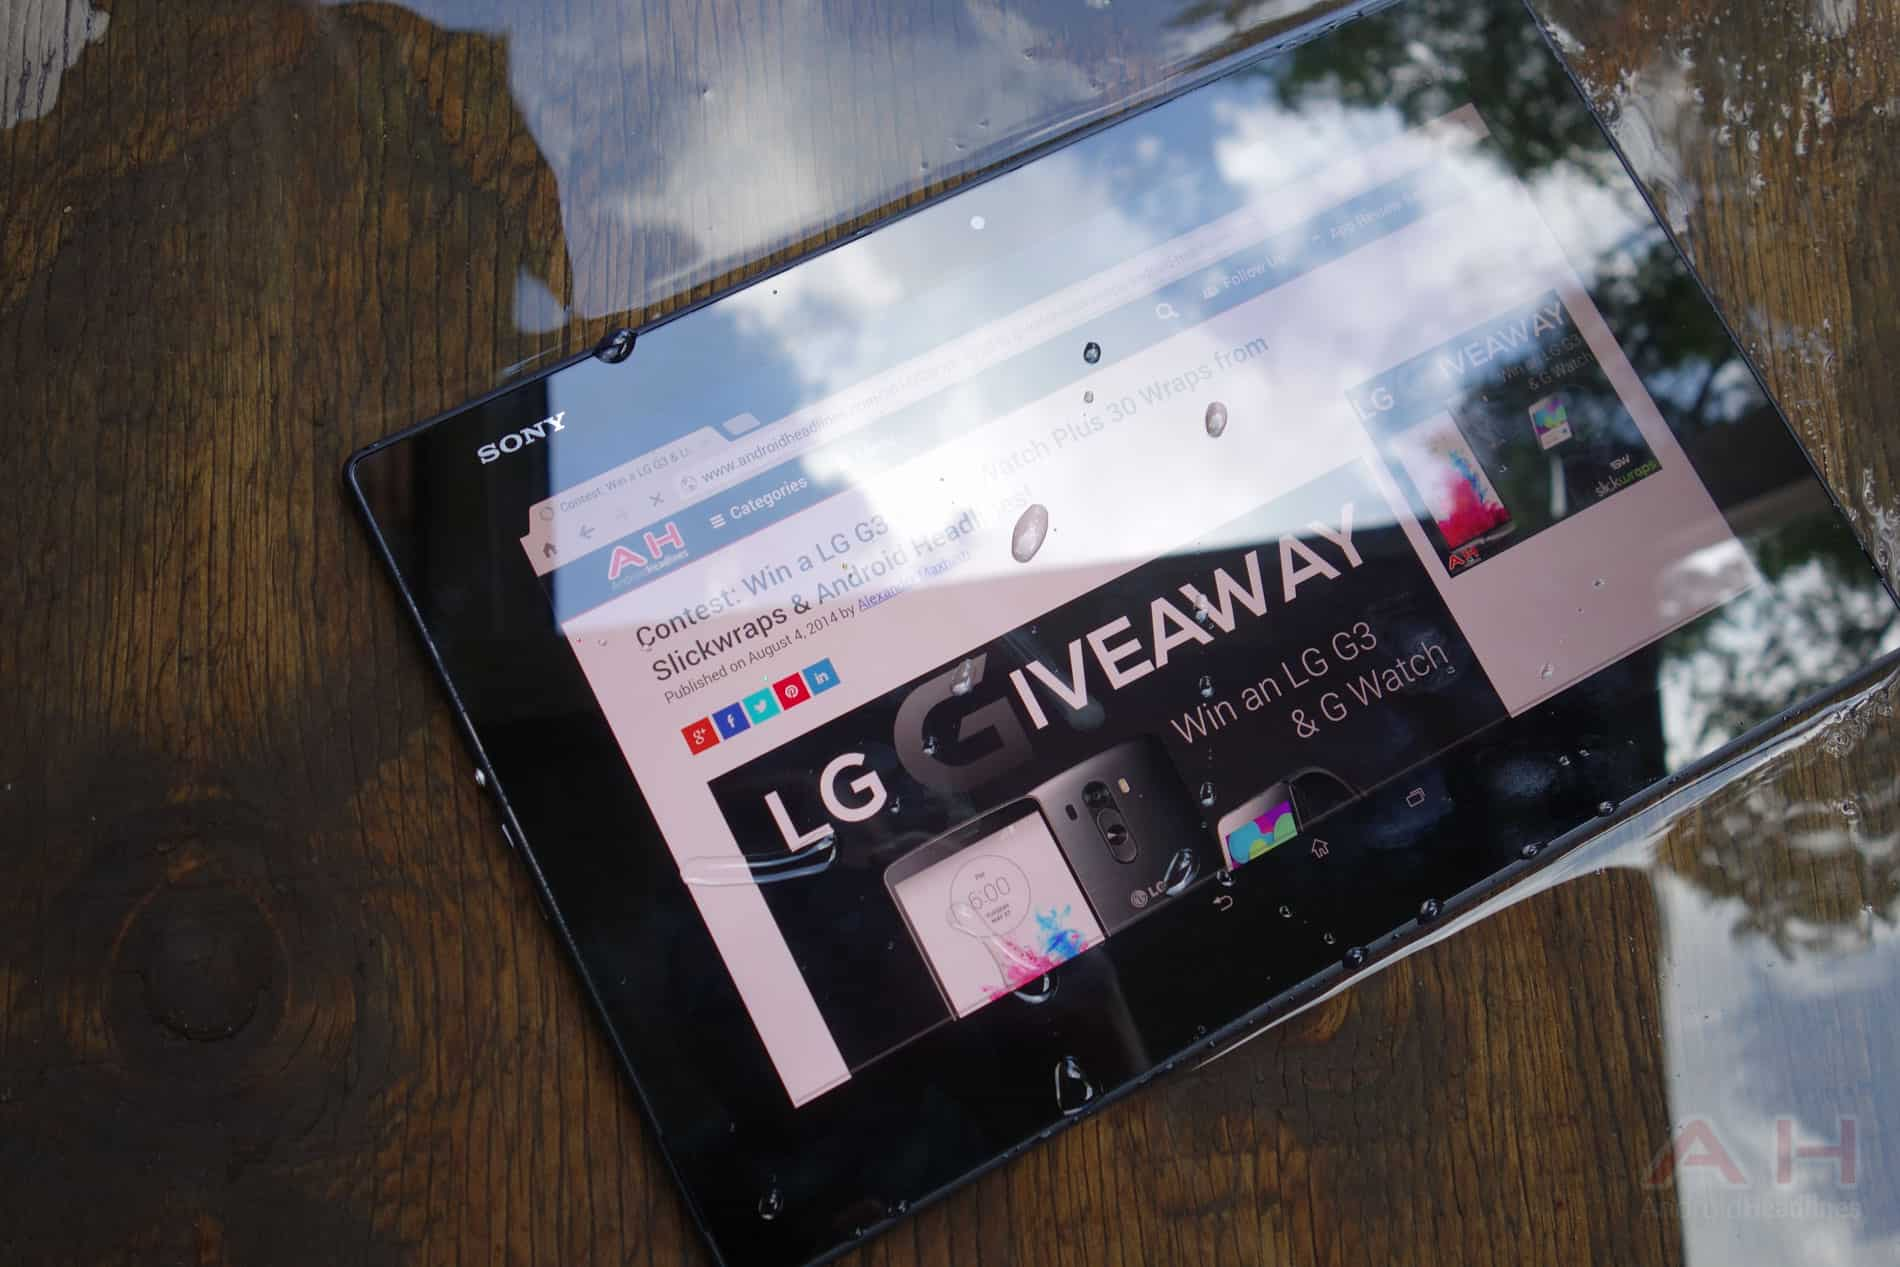 Sony Xperia Z3 Tablet Compact, αδιάβροχο με 8″ οθόνη